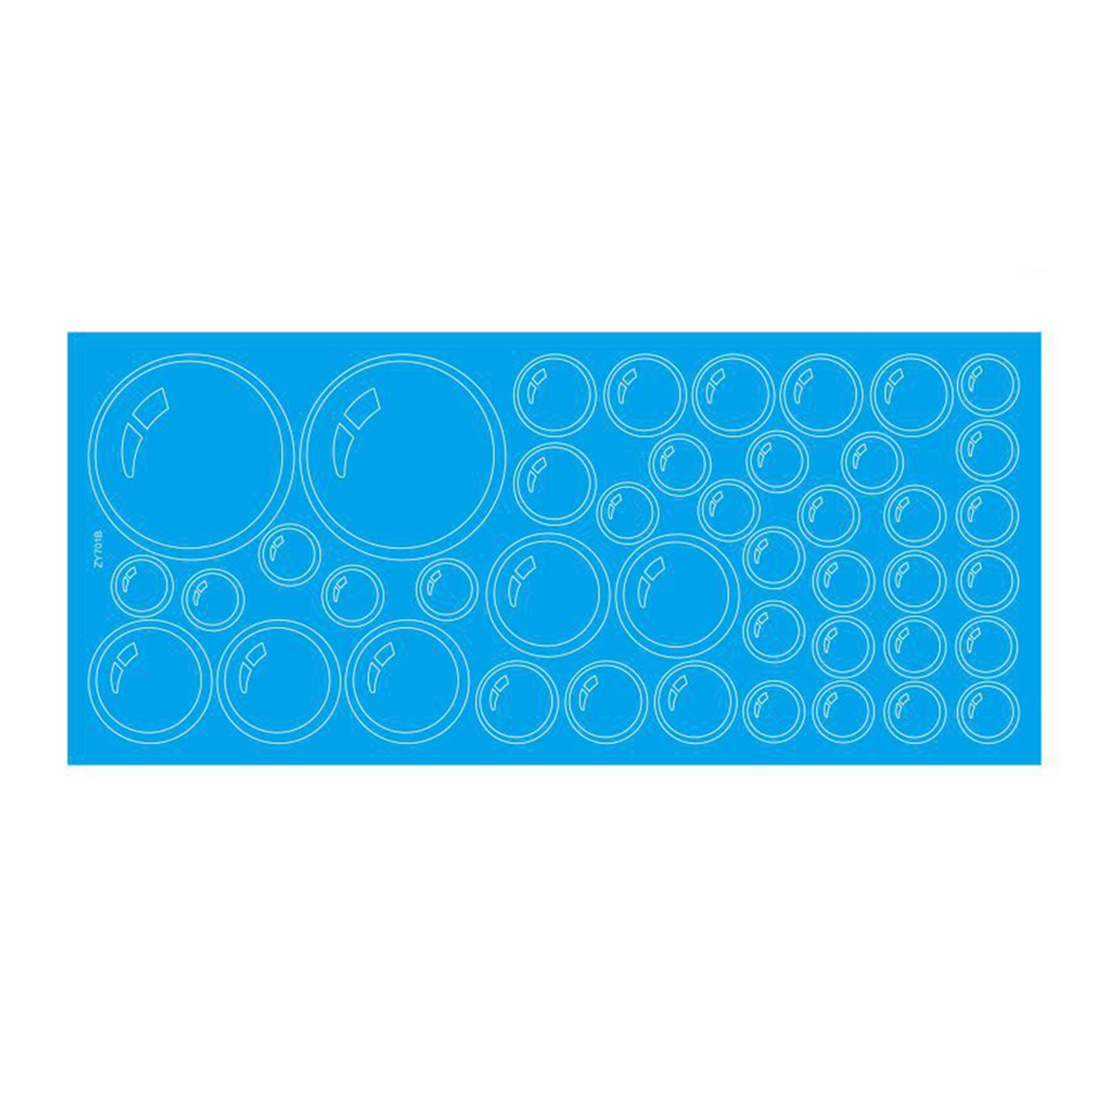 Bubbles Pattern Bathroom Windows Tile Wall Stickers Decals Decor Blue